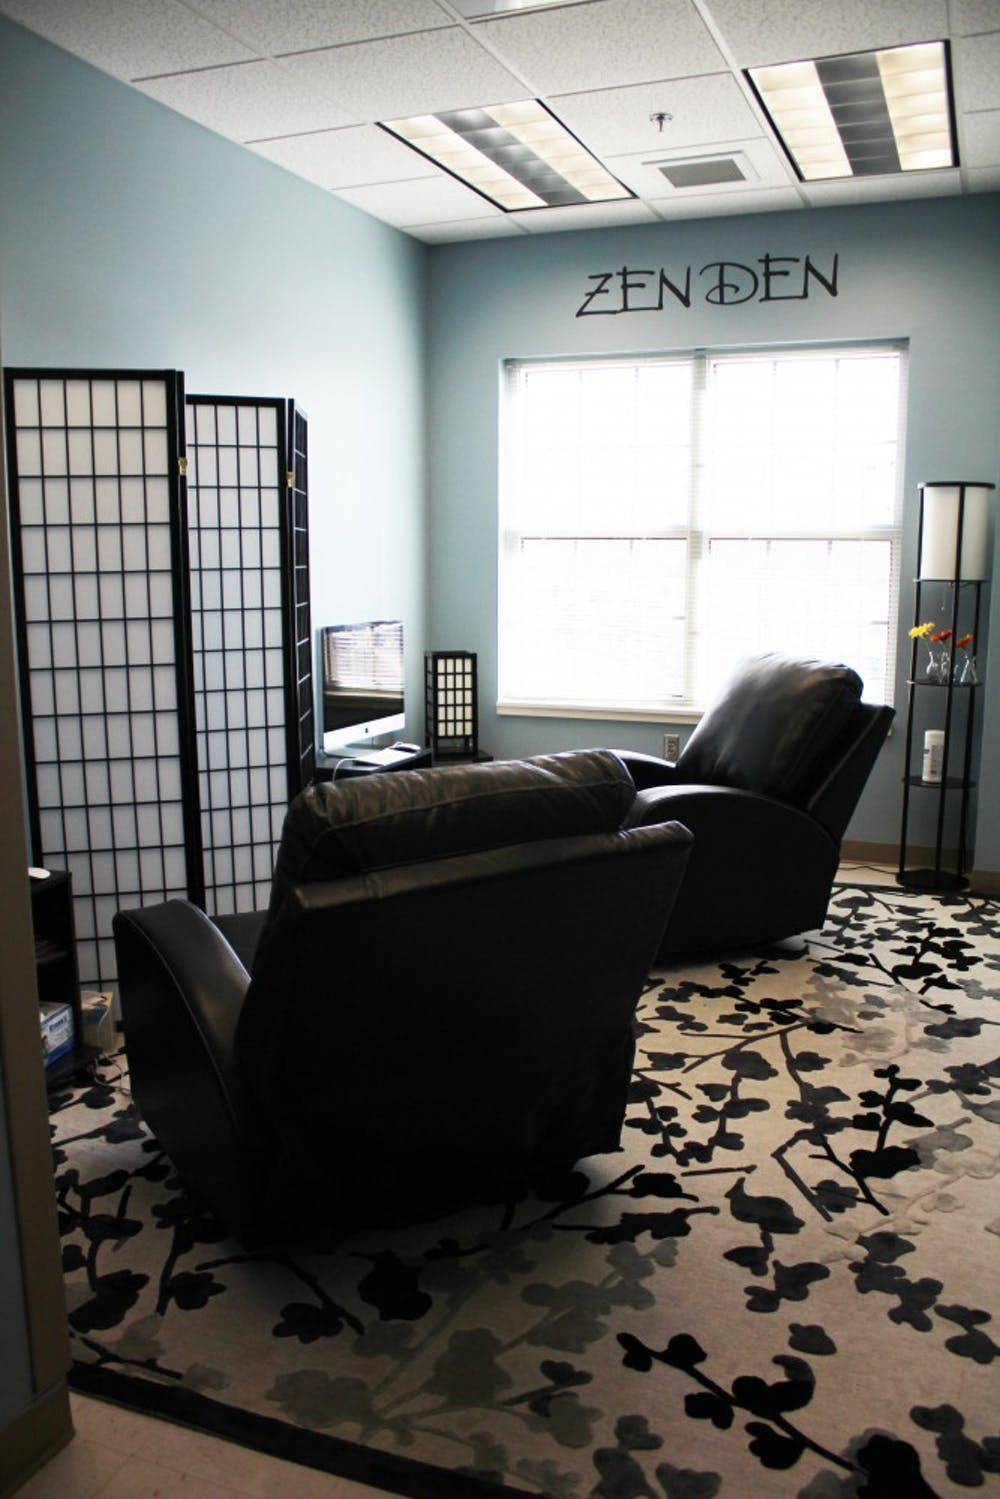 Student Counseling Services offers Zen Den